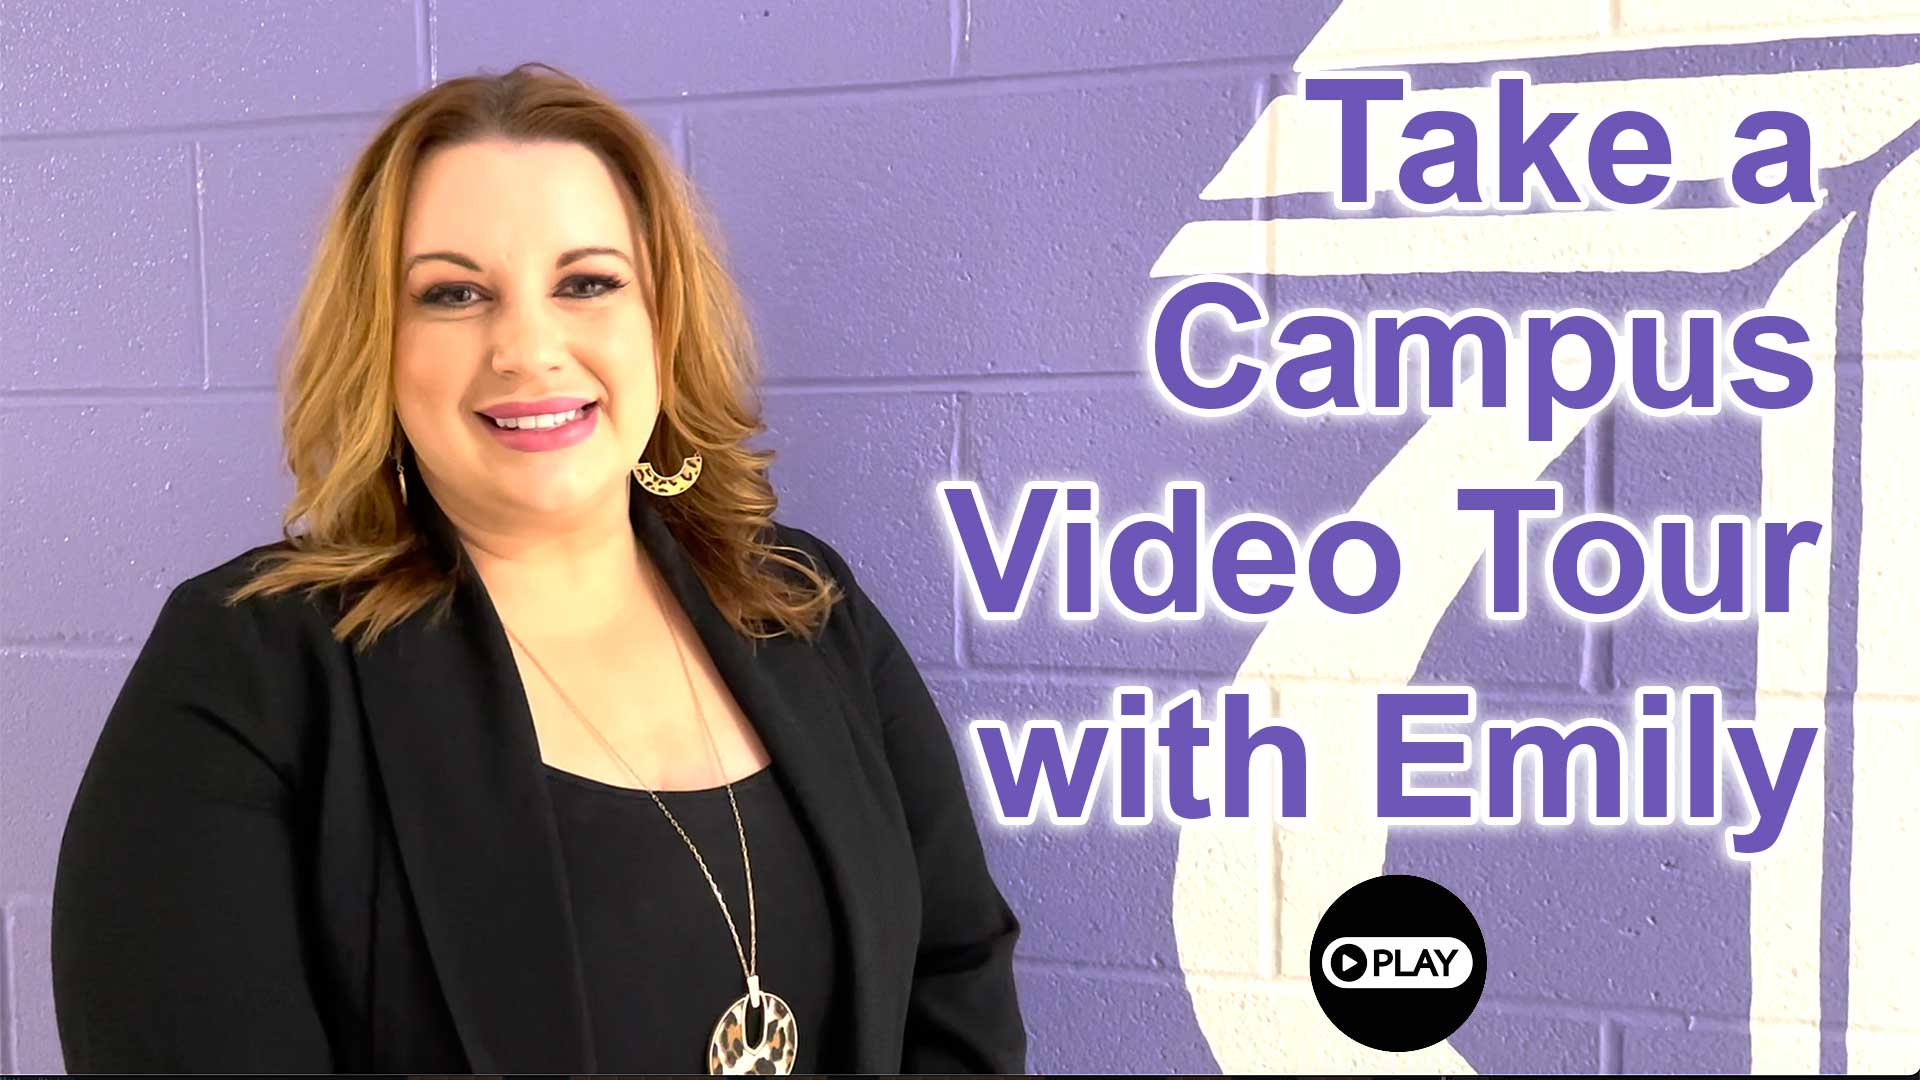 Campus Video Tour